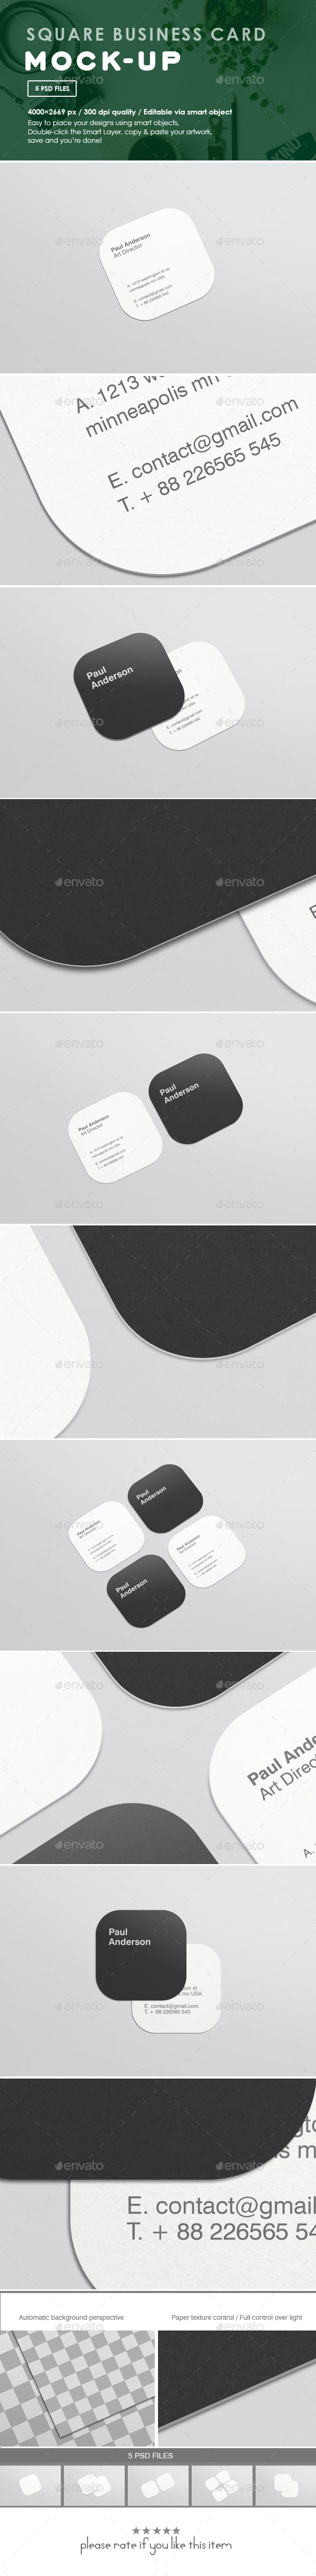 Square Business Card Mockups - Business Cards Print